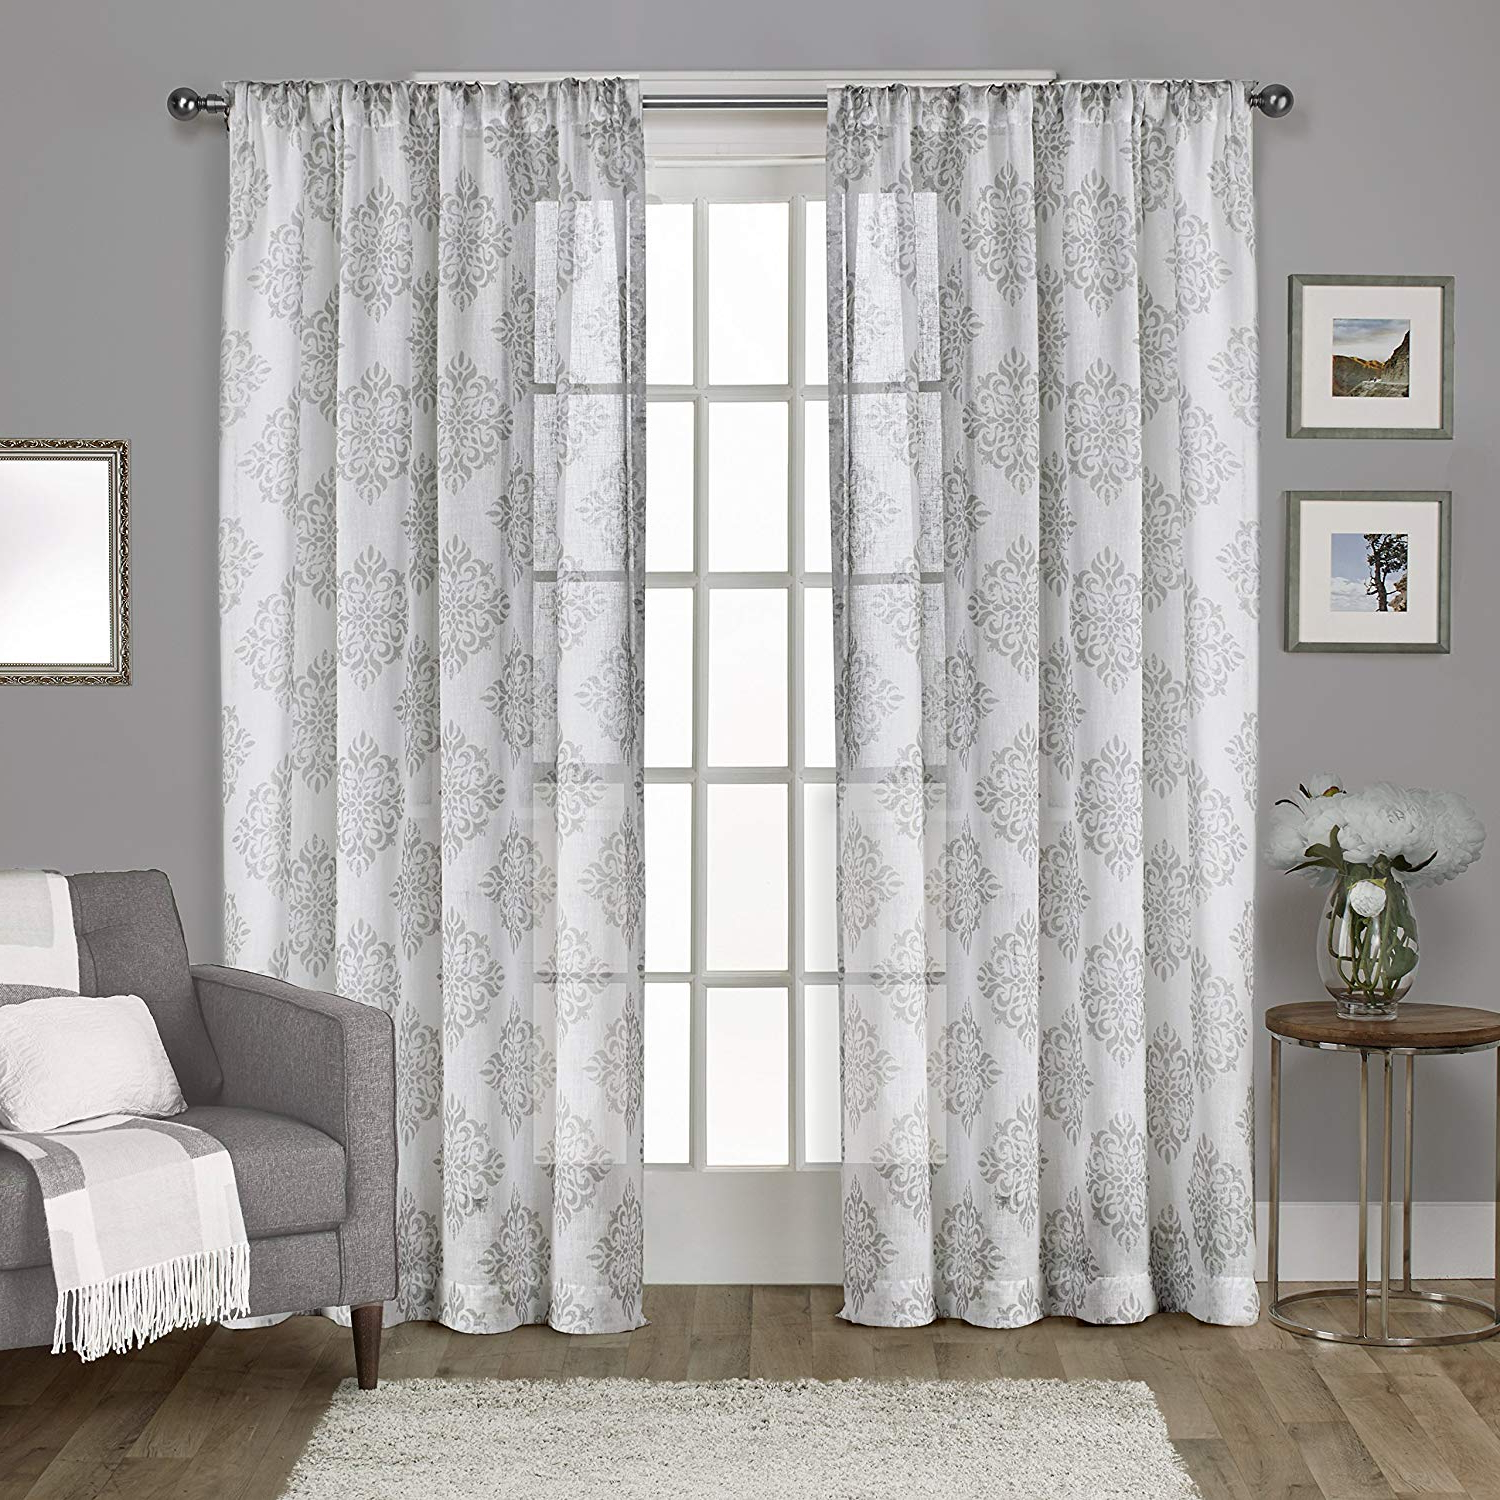 Well Known Belgian Sheer Window Curtain Panel Pairs With Rod Pocket Throughout Exclusive Home Curtains Nagano Medallion Belgian Linen Window Curtain Panel Pair With Rod Pocket, 54x84, Dove Grey, 2 Piece (View 14 of 20)